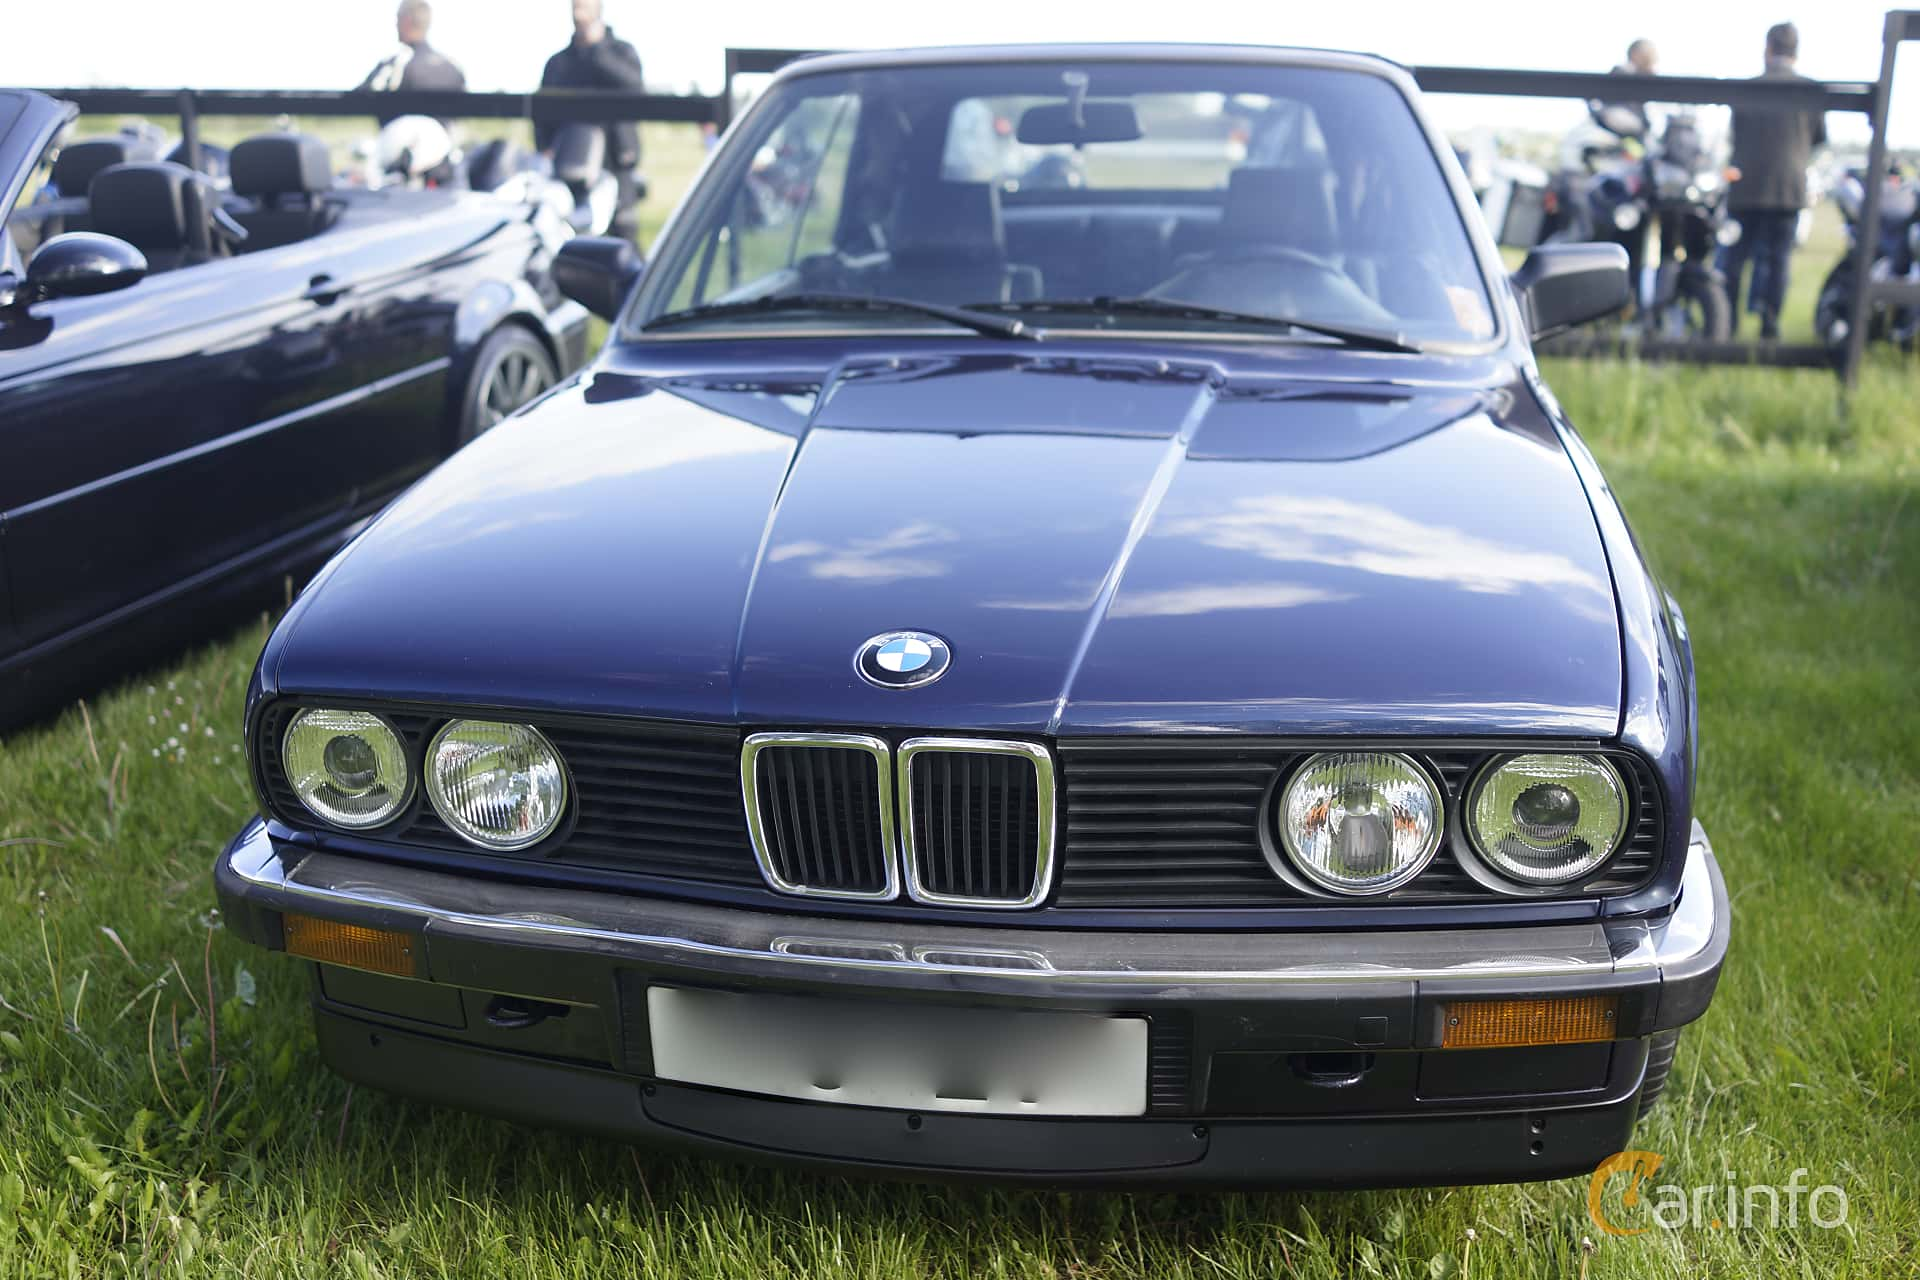 2 images of BMW 320i Convertible Manual 129hp 1990 by jonasbonde